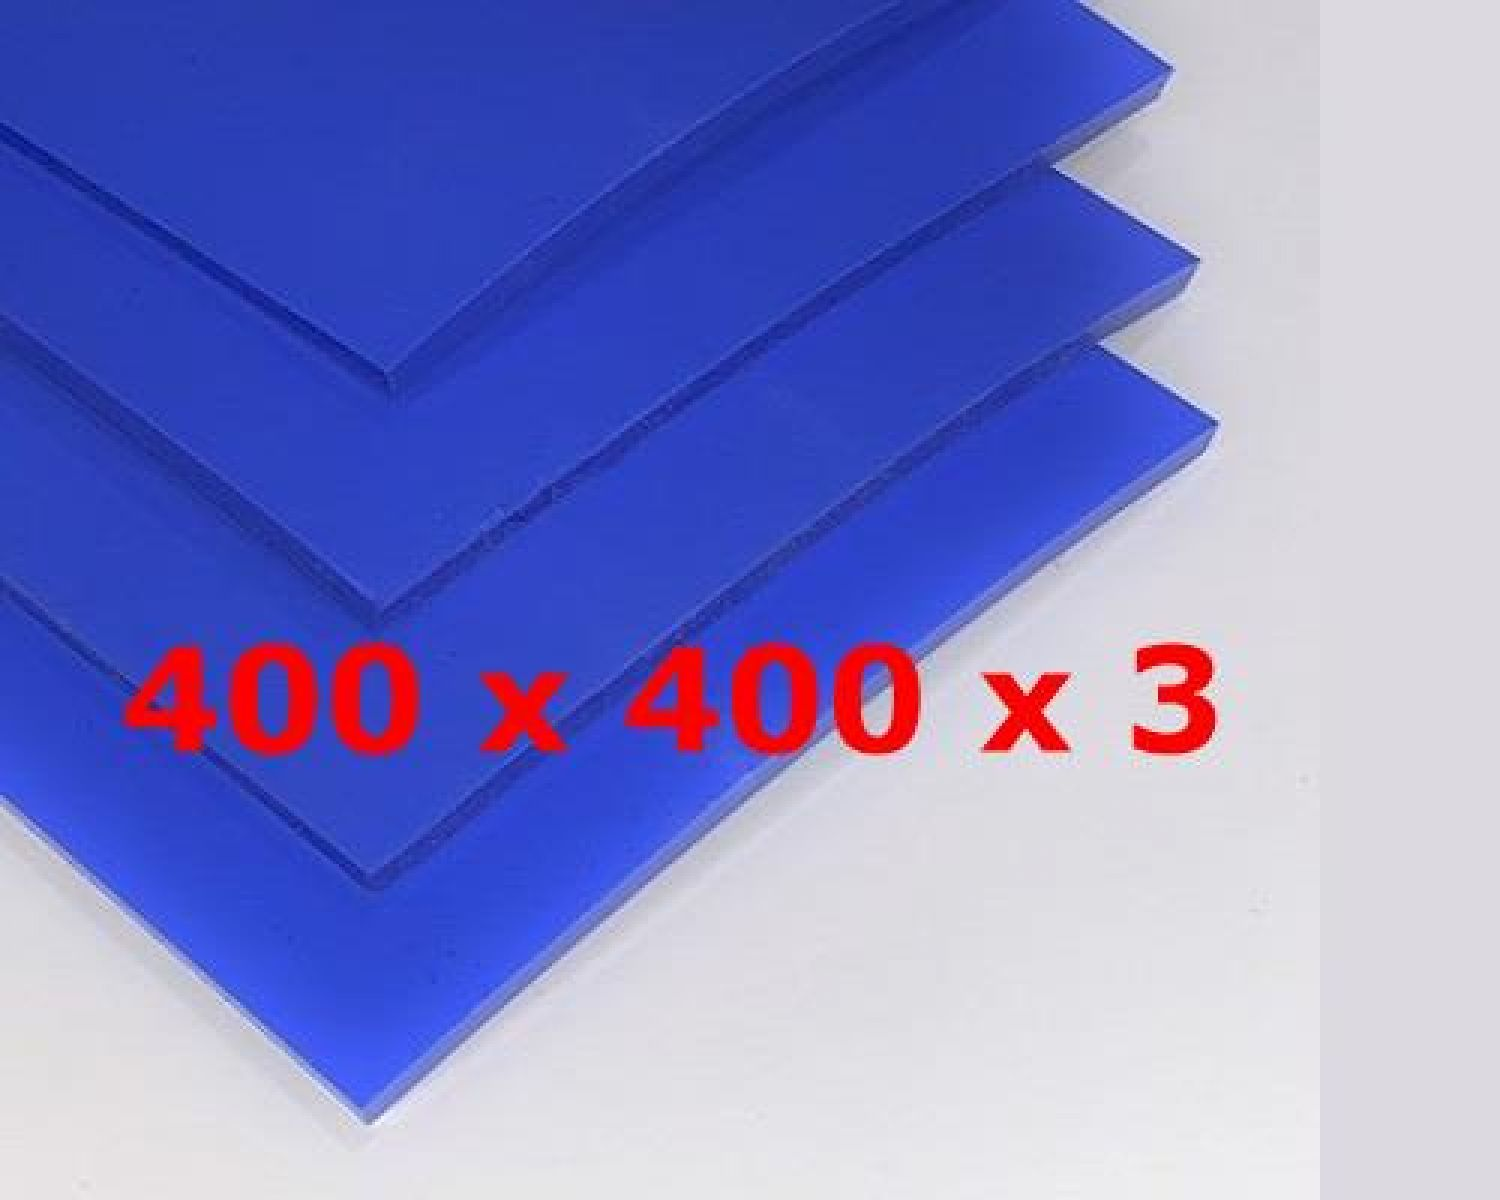 BLUE SILICONE SHEET FOOD SAFE 60 SH° (±5) 400 mm X 400 mm X 3mm (±0,3) Thickness  NO TALC